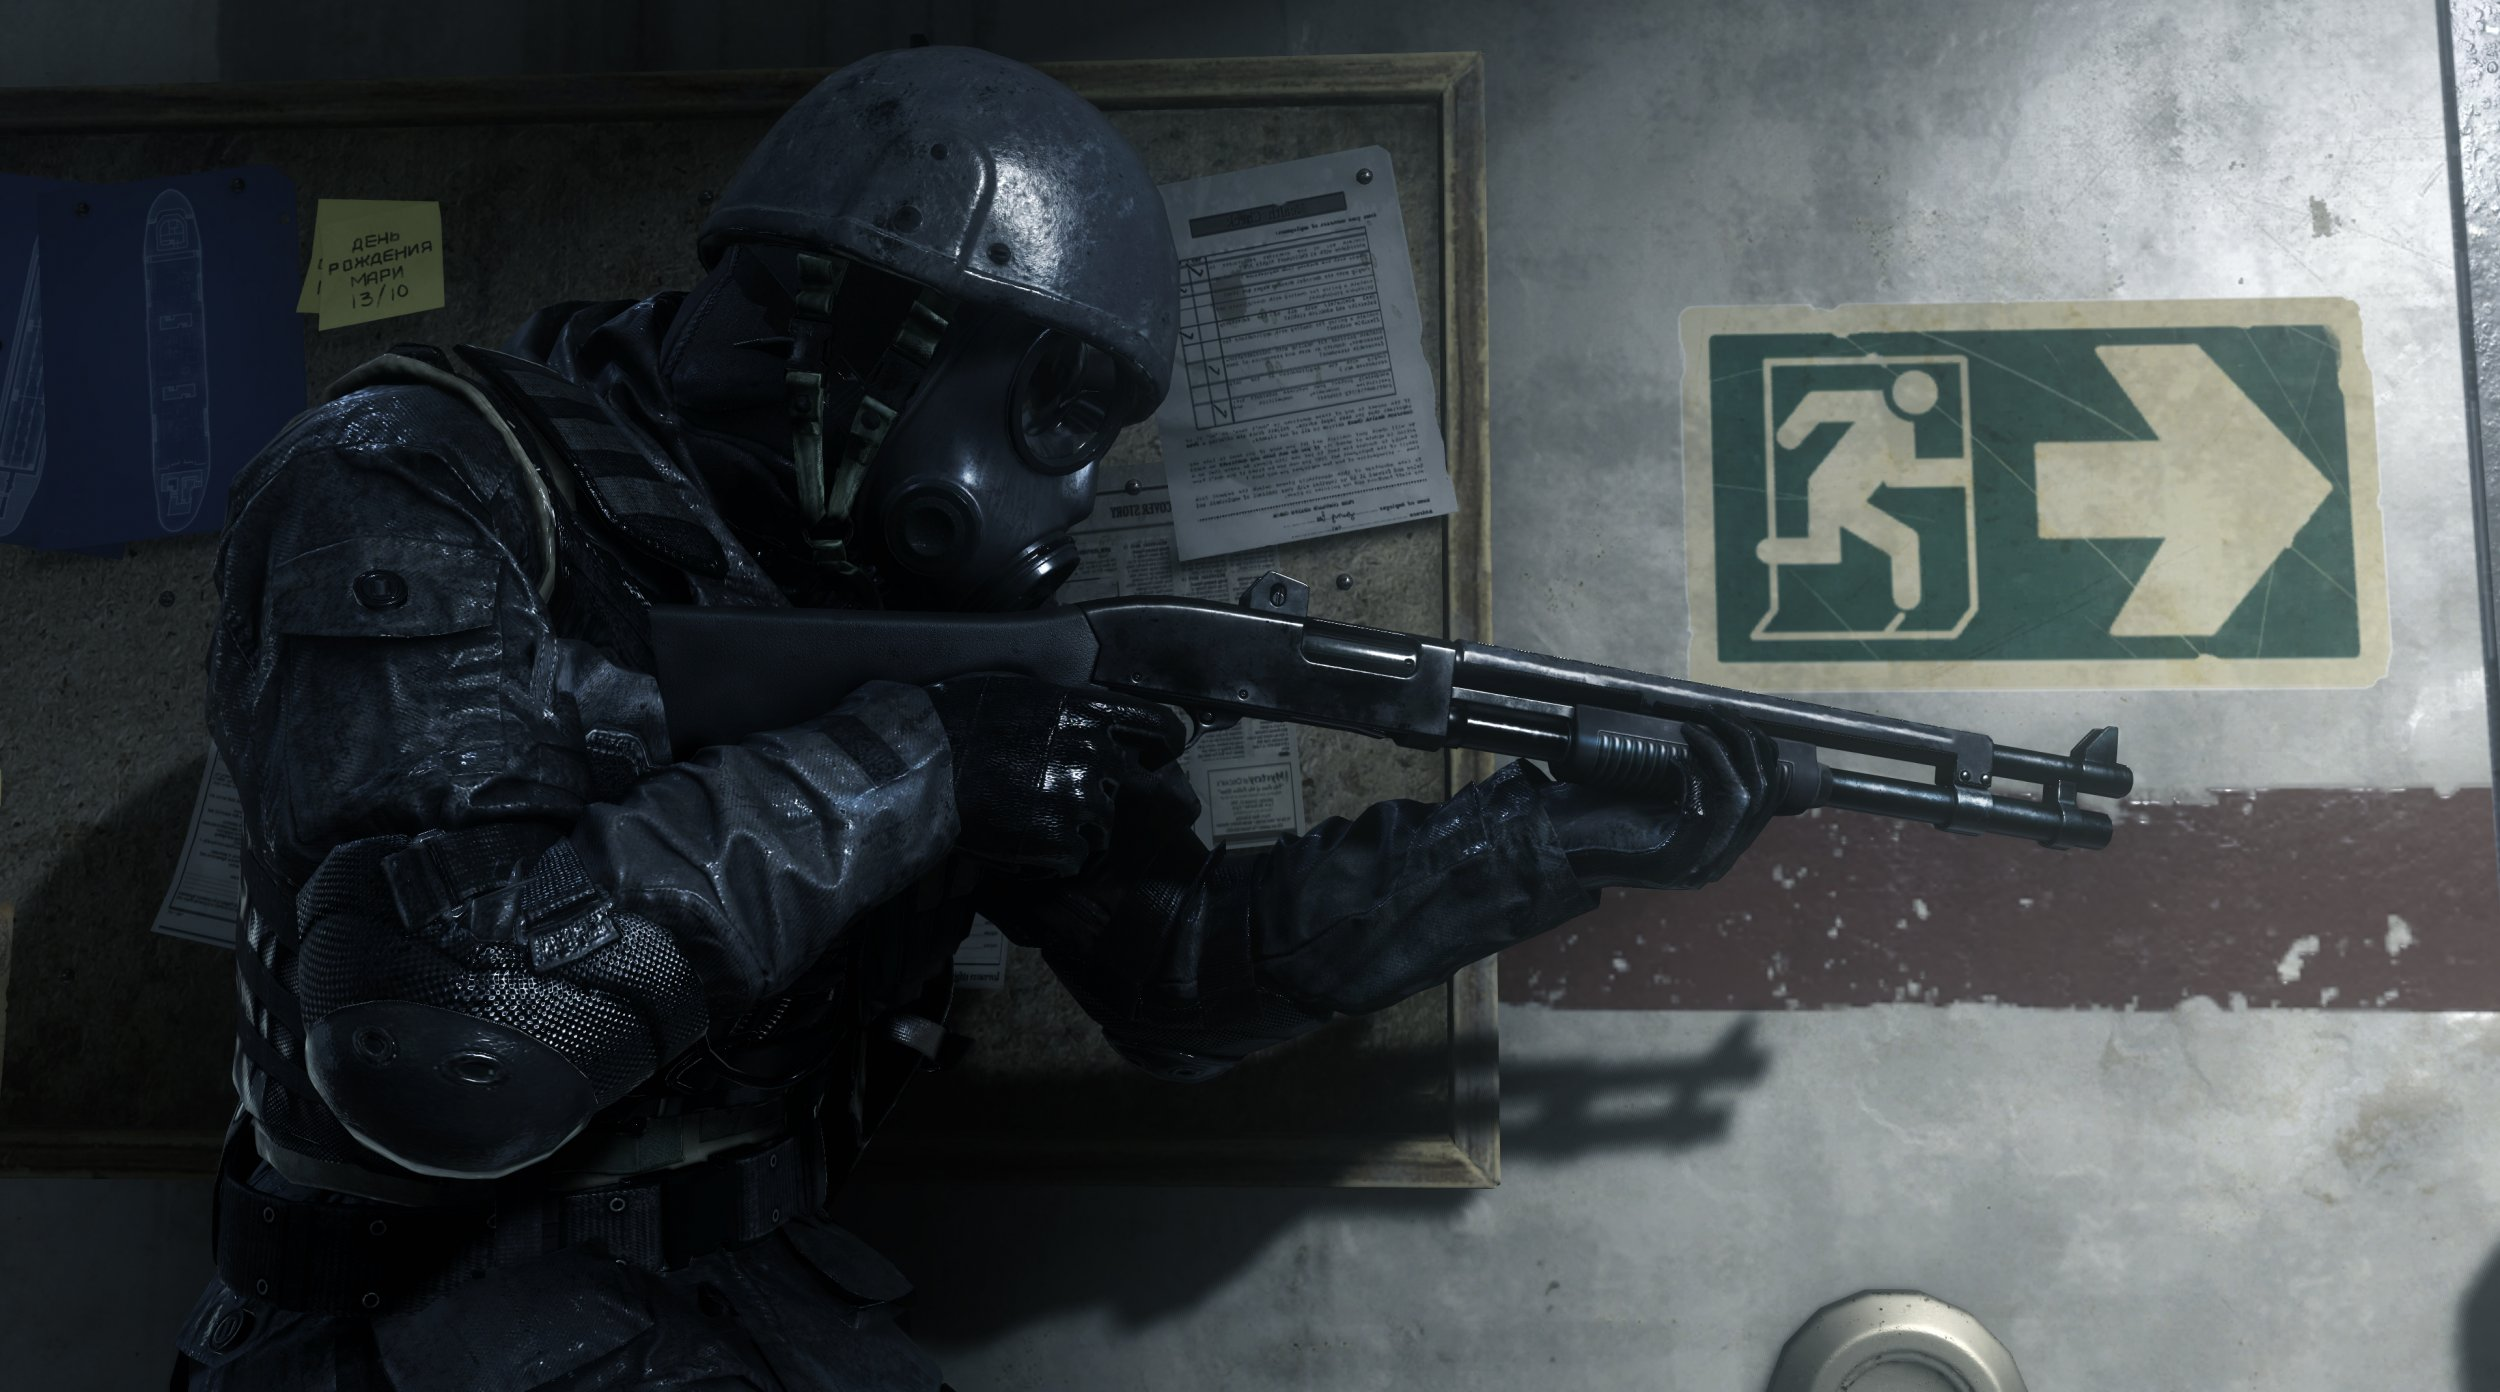 Call of Duty: Modern Warfare Remastered' - How to Get & Farm